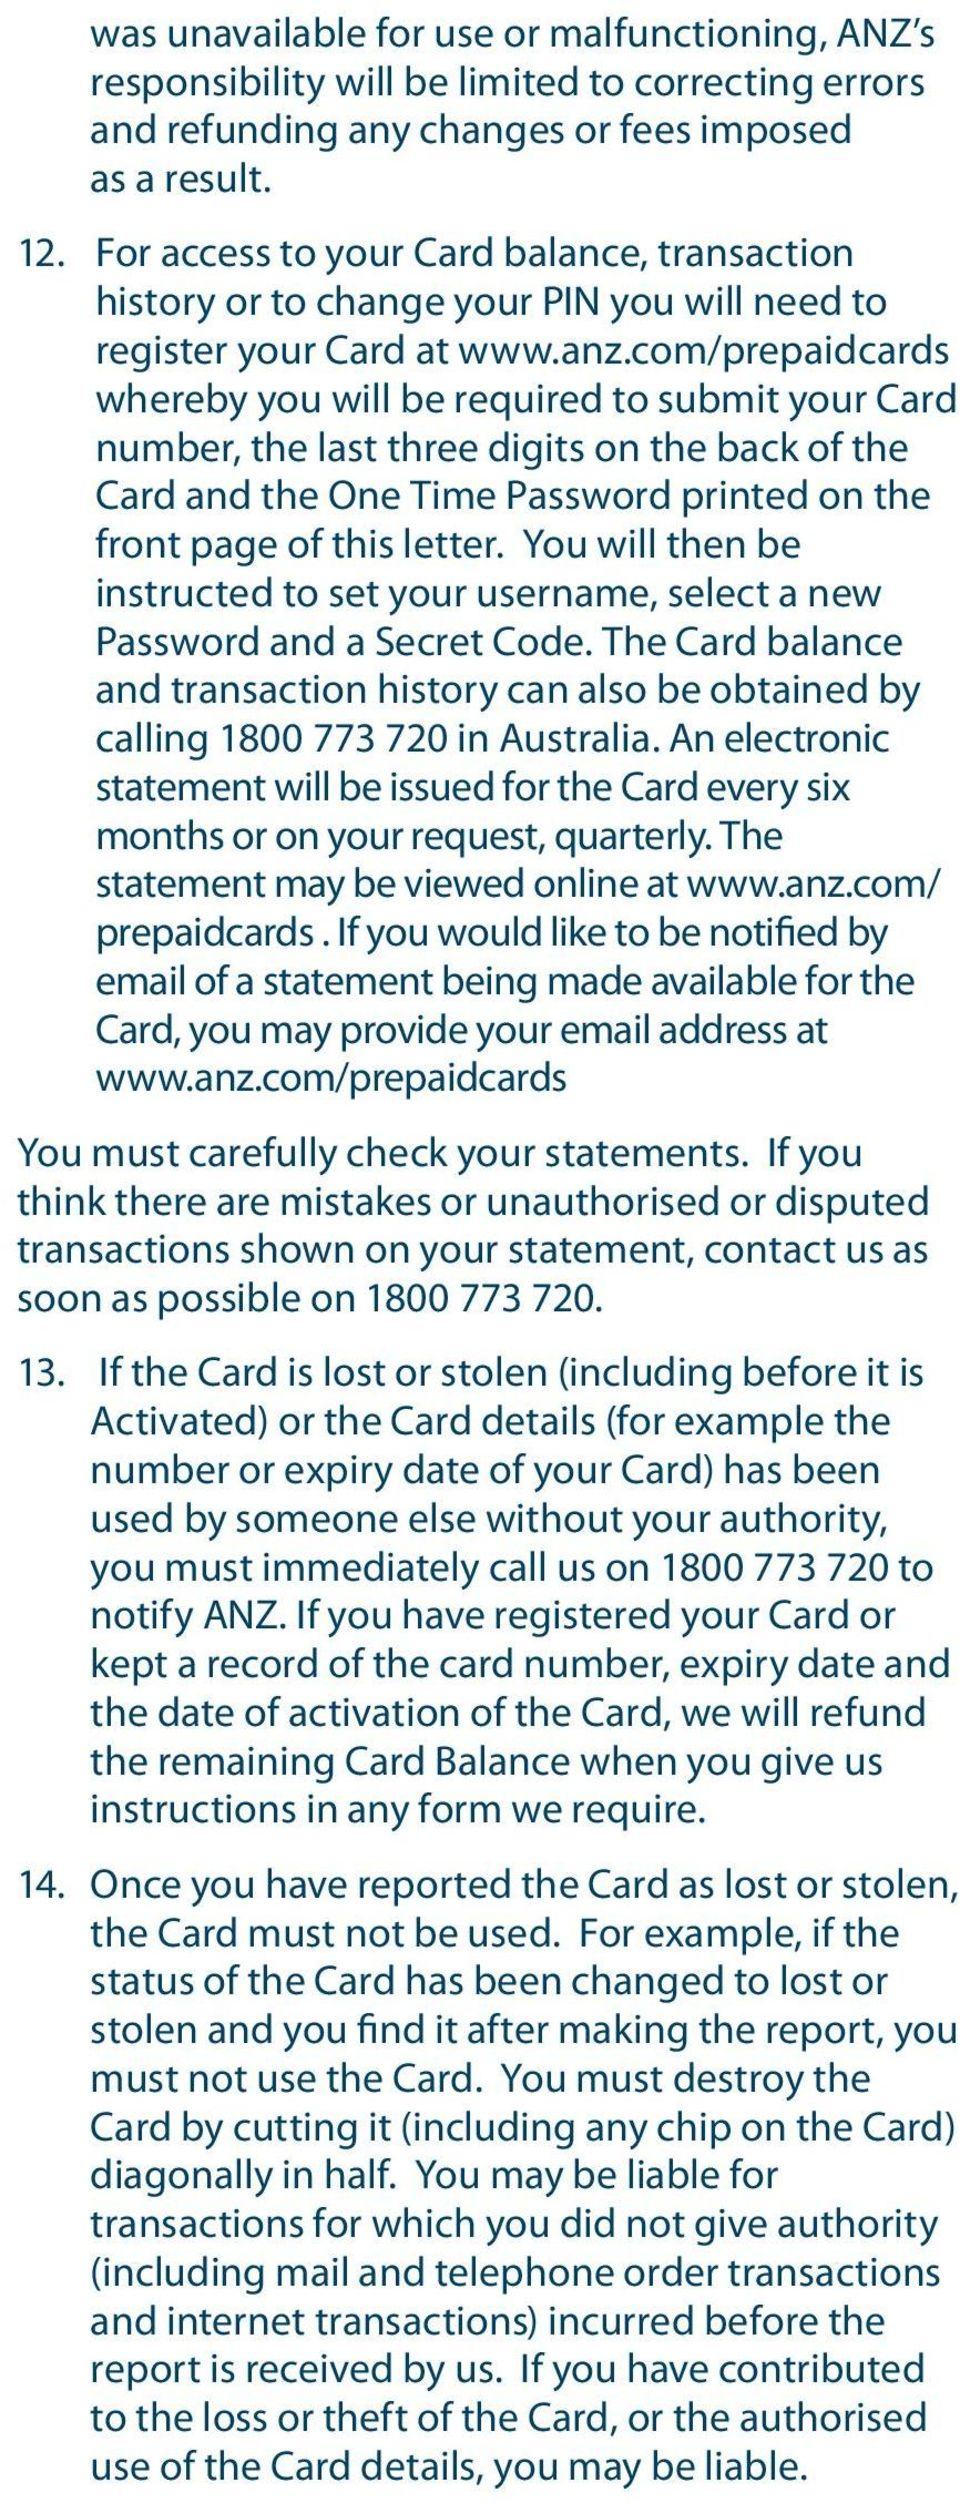 com/prepaidcards whereby you will be required to submit your Card number, the last three digits on the back of the Card and the One Time Password printed on the front page of this letter.